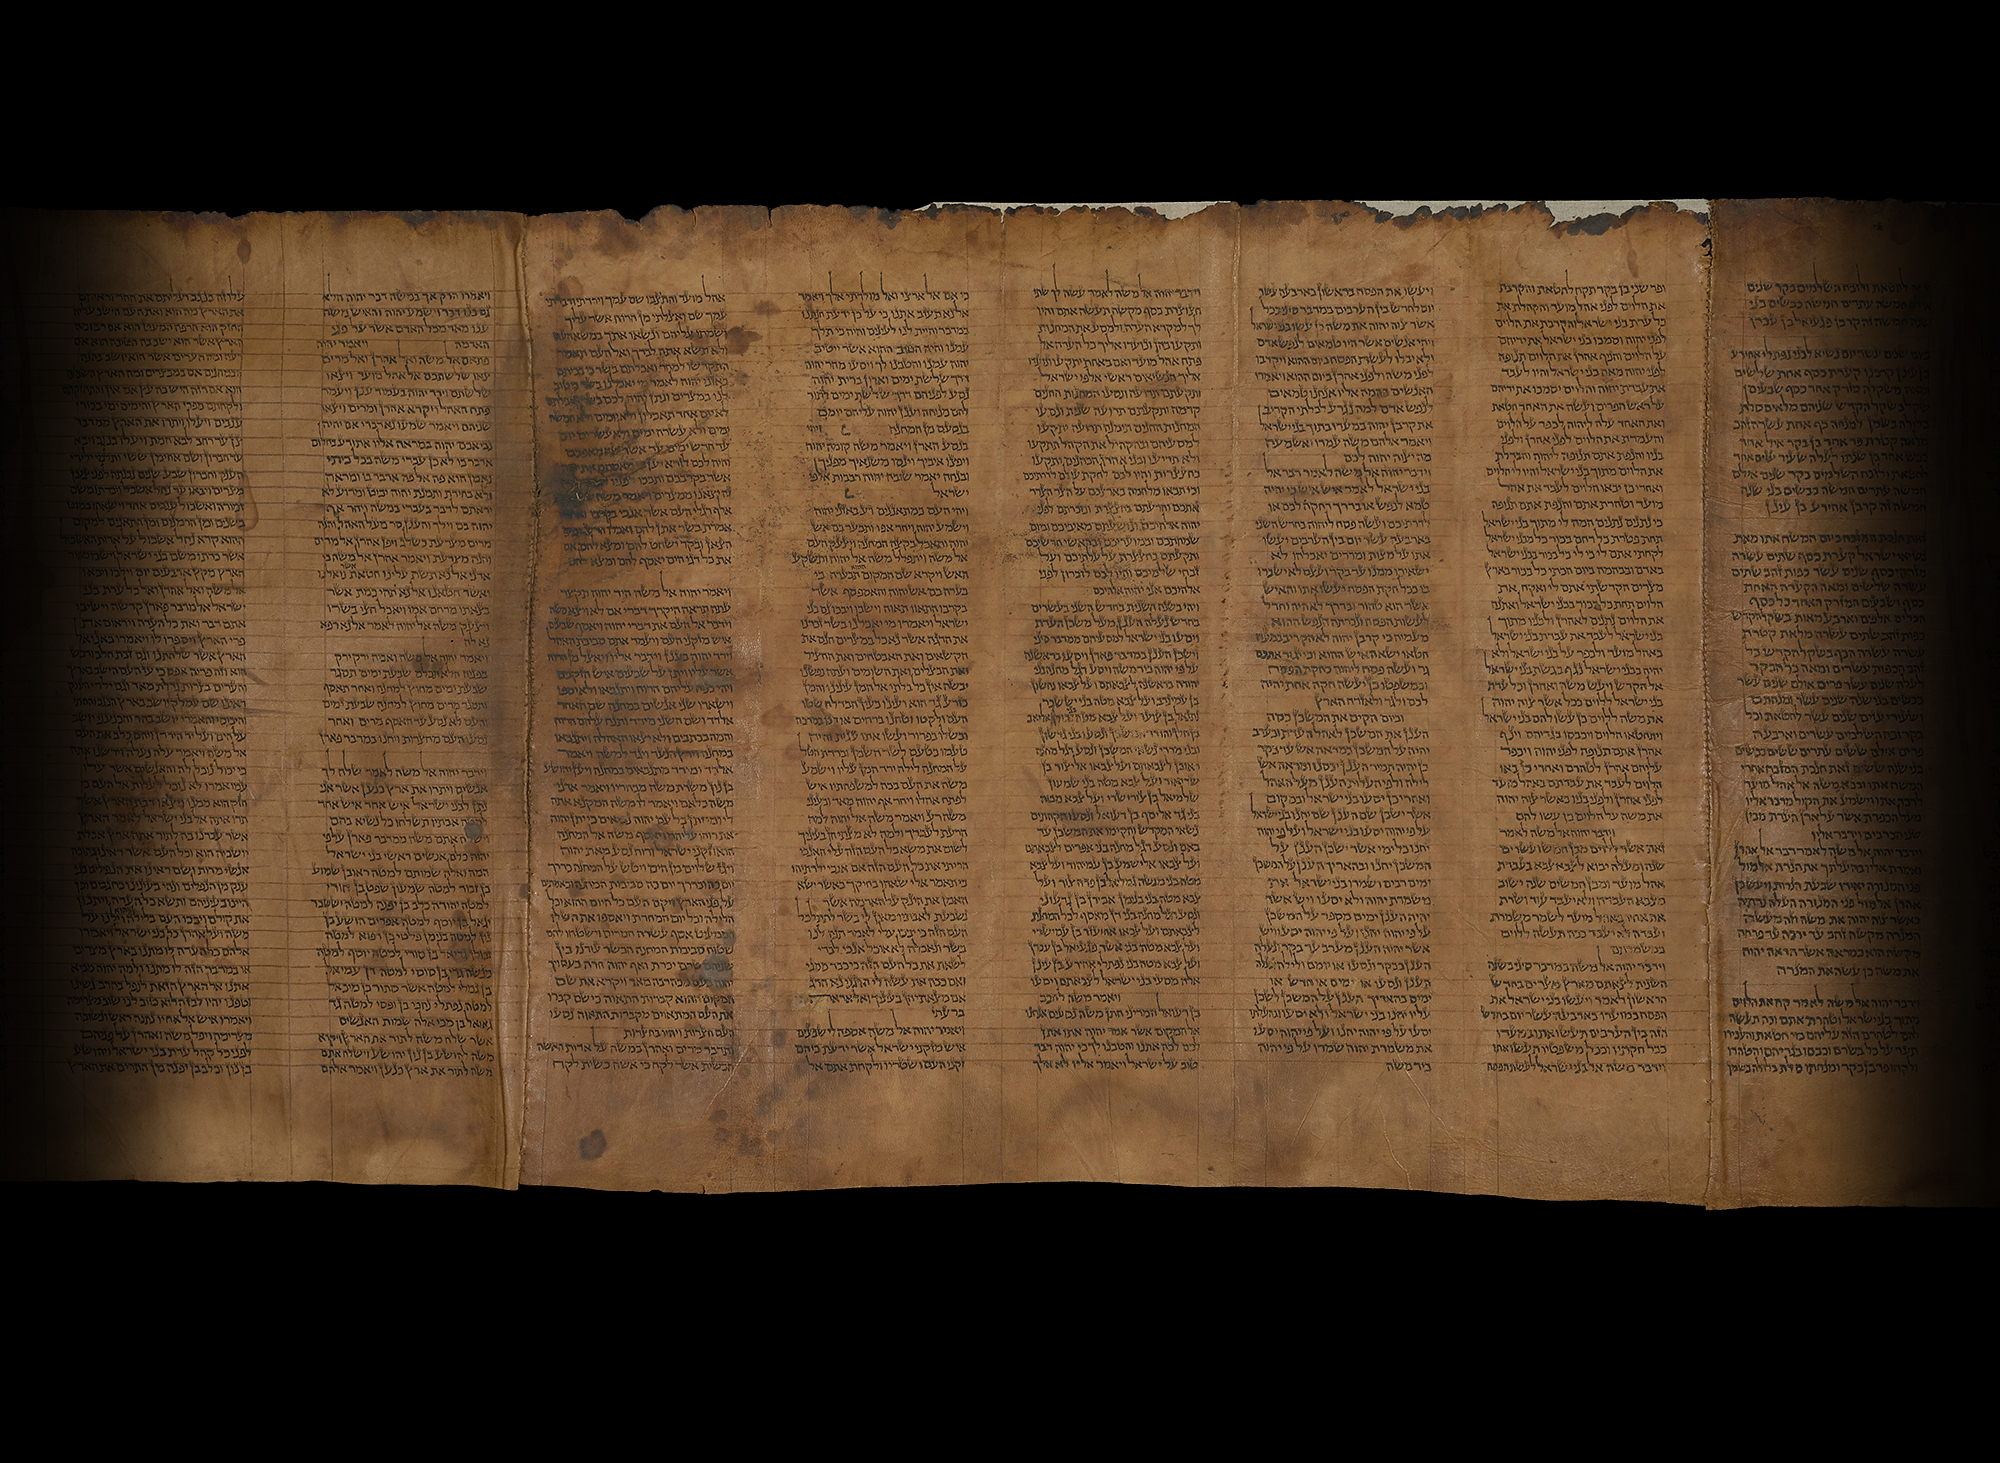 Sefer Torah: The Pentateuch scroll - The British Library